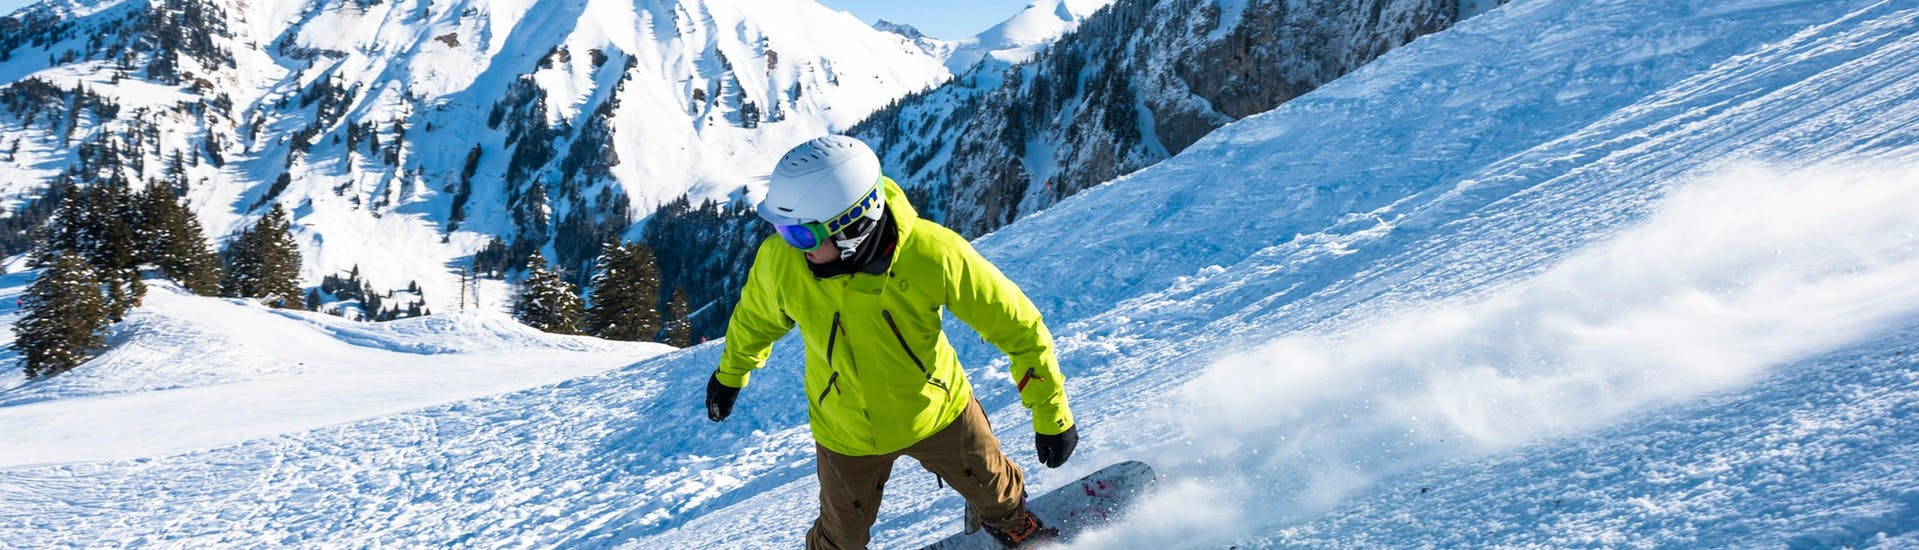 A snowboarder is going down a slope with confidence thanks to his Private Snowboarding Lessons - All Levels & Ages with the swiss ski school Charmey.